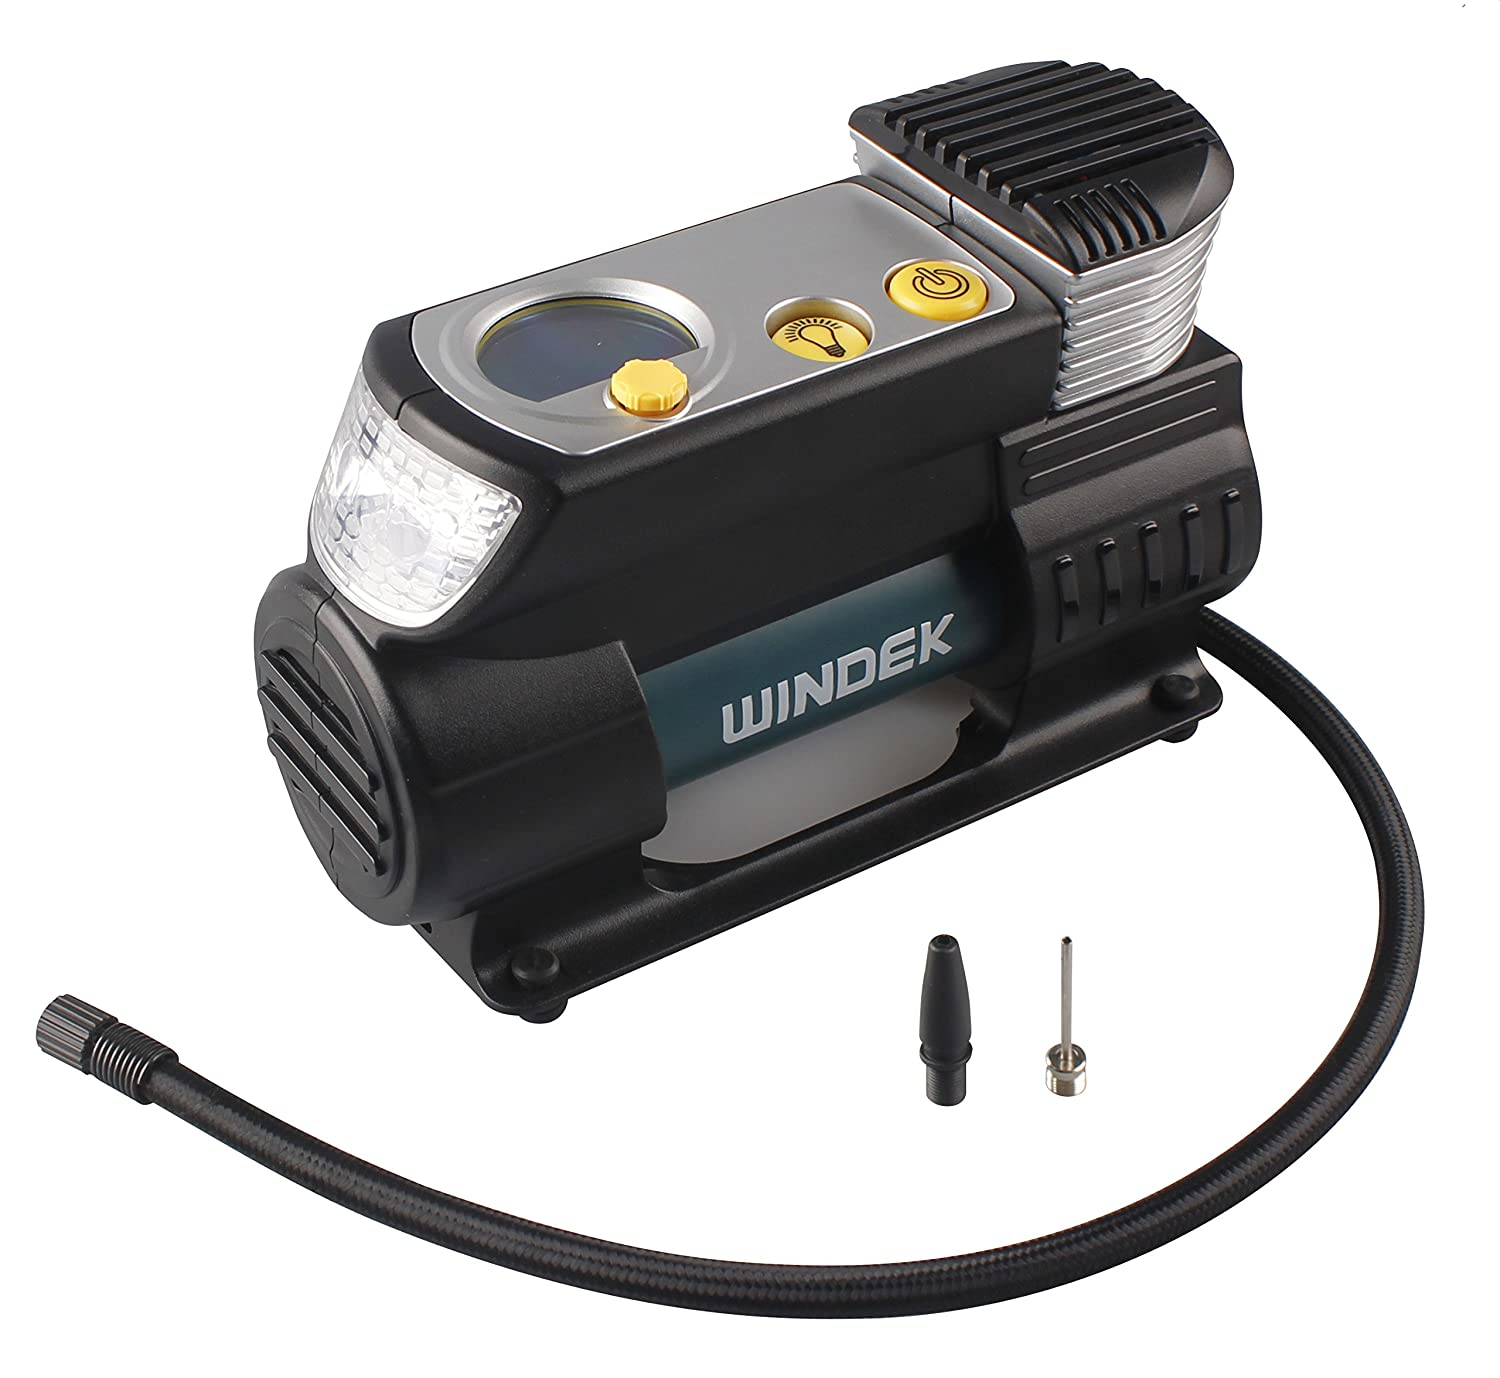 Top 10 Best Tire Inflators With Gauges Reviews in 2020 1